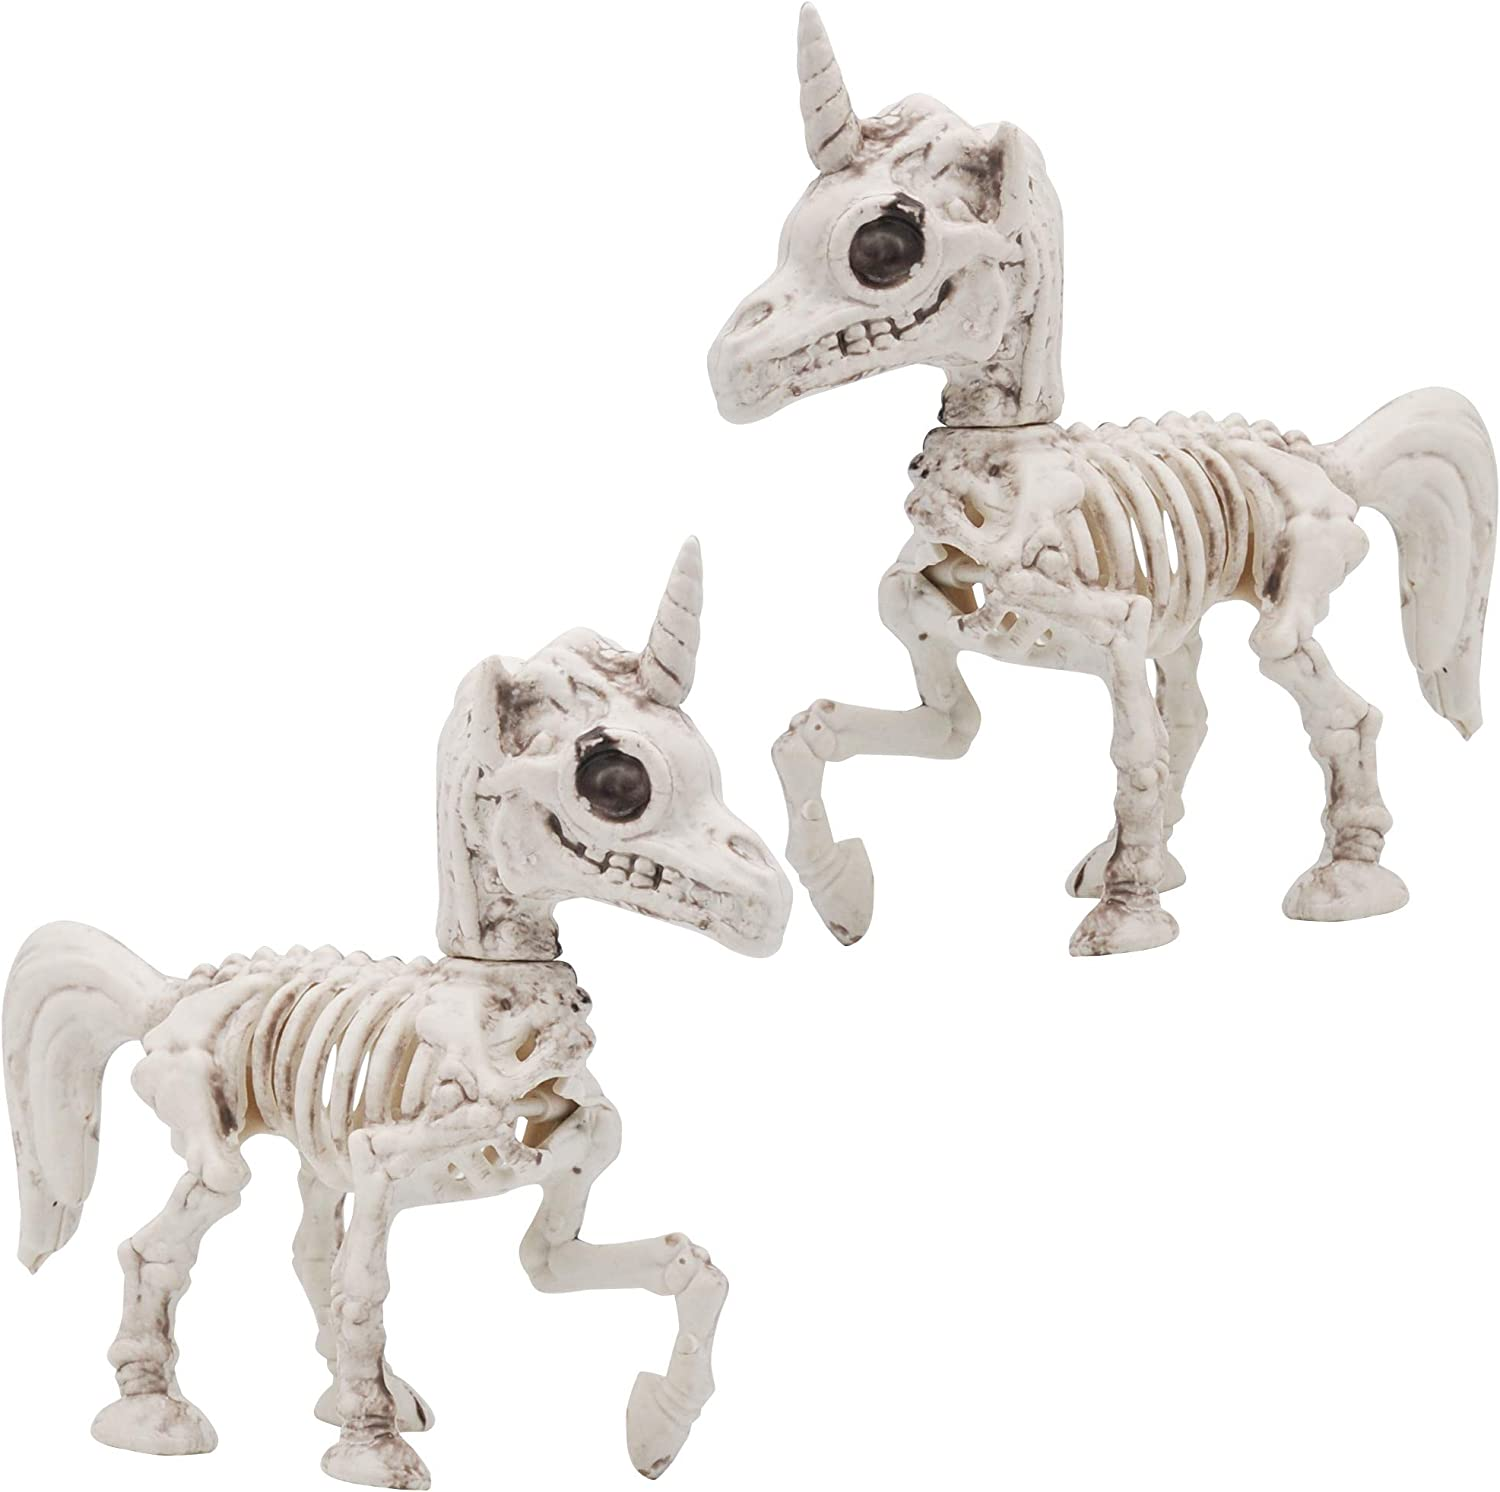 """Halloween Decoration 2 PCs 7"""" Pose-N-Stay Unicorn Skeleton Plastic Bones with Posable Joints for Pose Skeleton Prop Indoor / Outdoor Spooky Scene Party Favors Décor."""